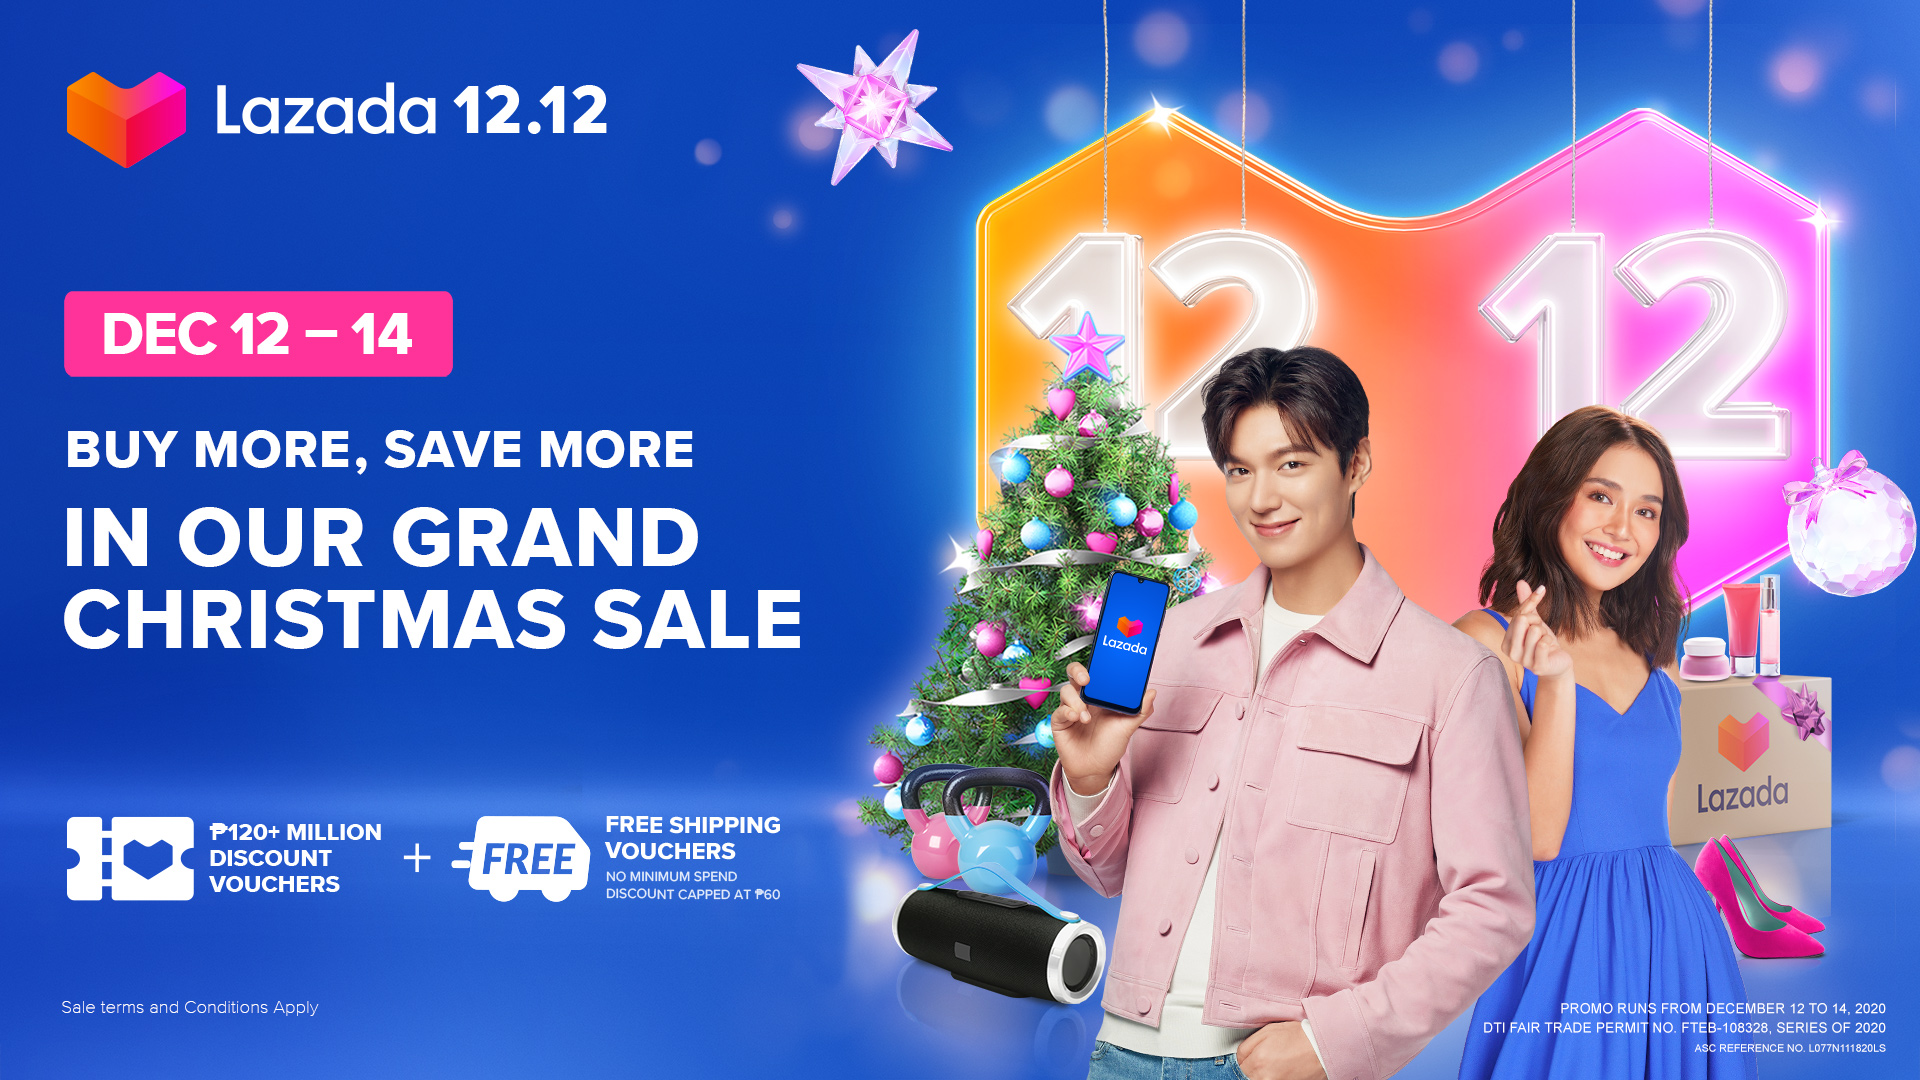 Lazada 12.12 Grand Christmas Sale